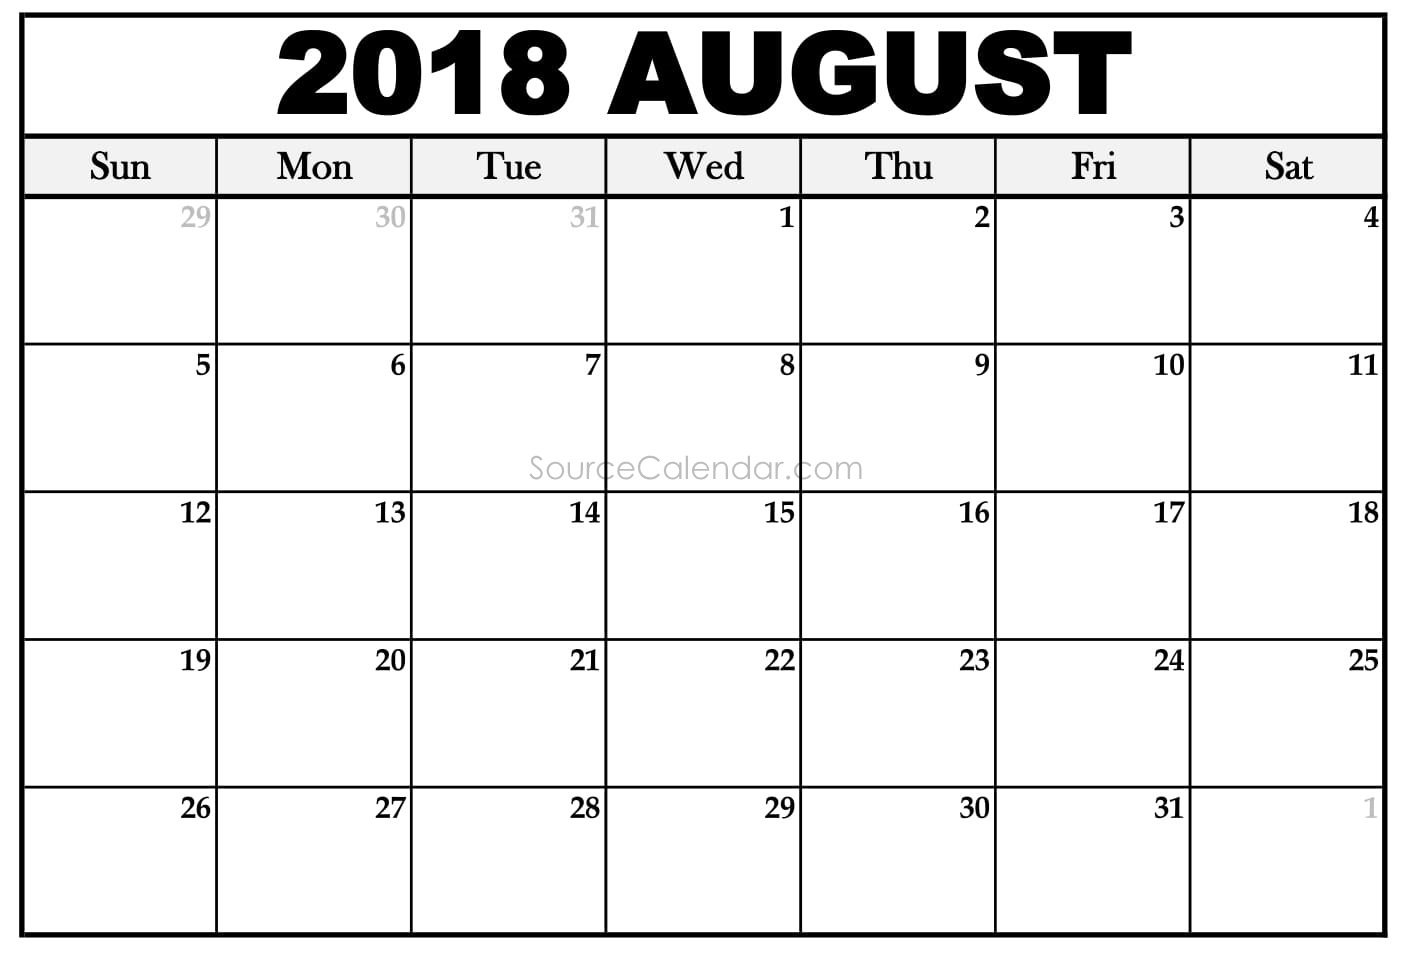 printable august 2018 calendar template pdf download with holidays usa Calendar August 2018 Printable Uk erdferdf